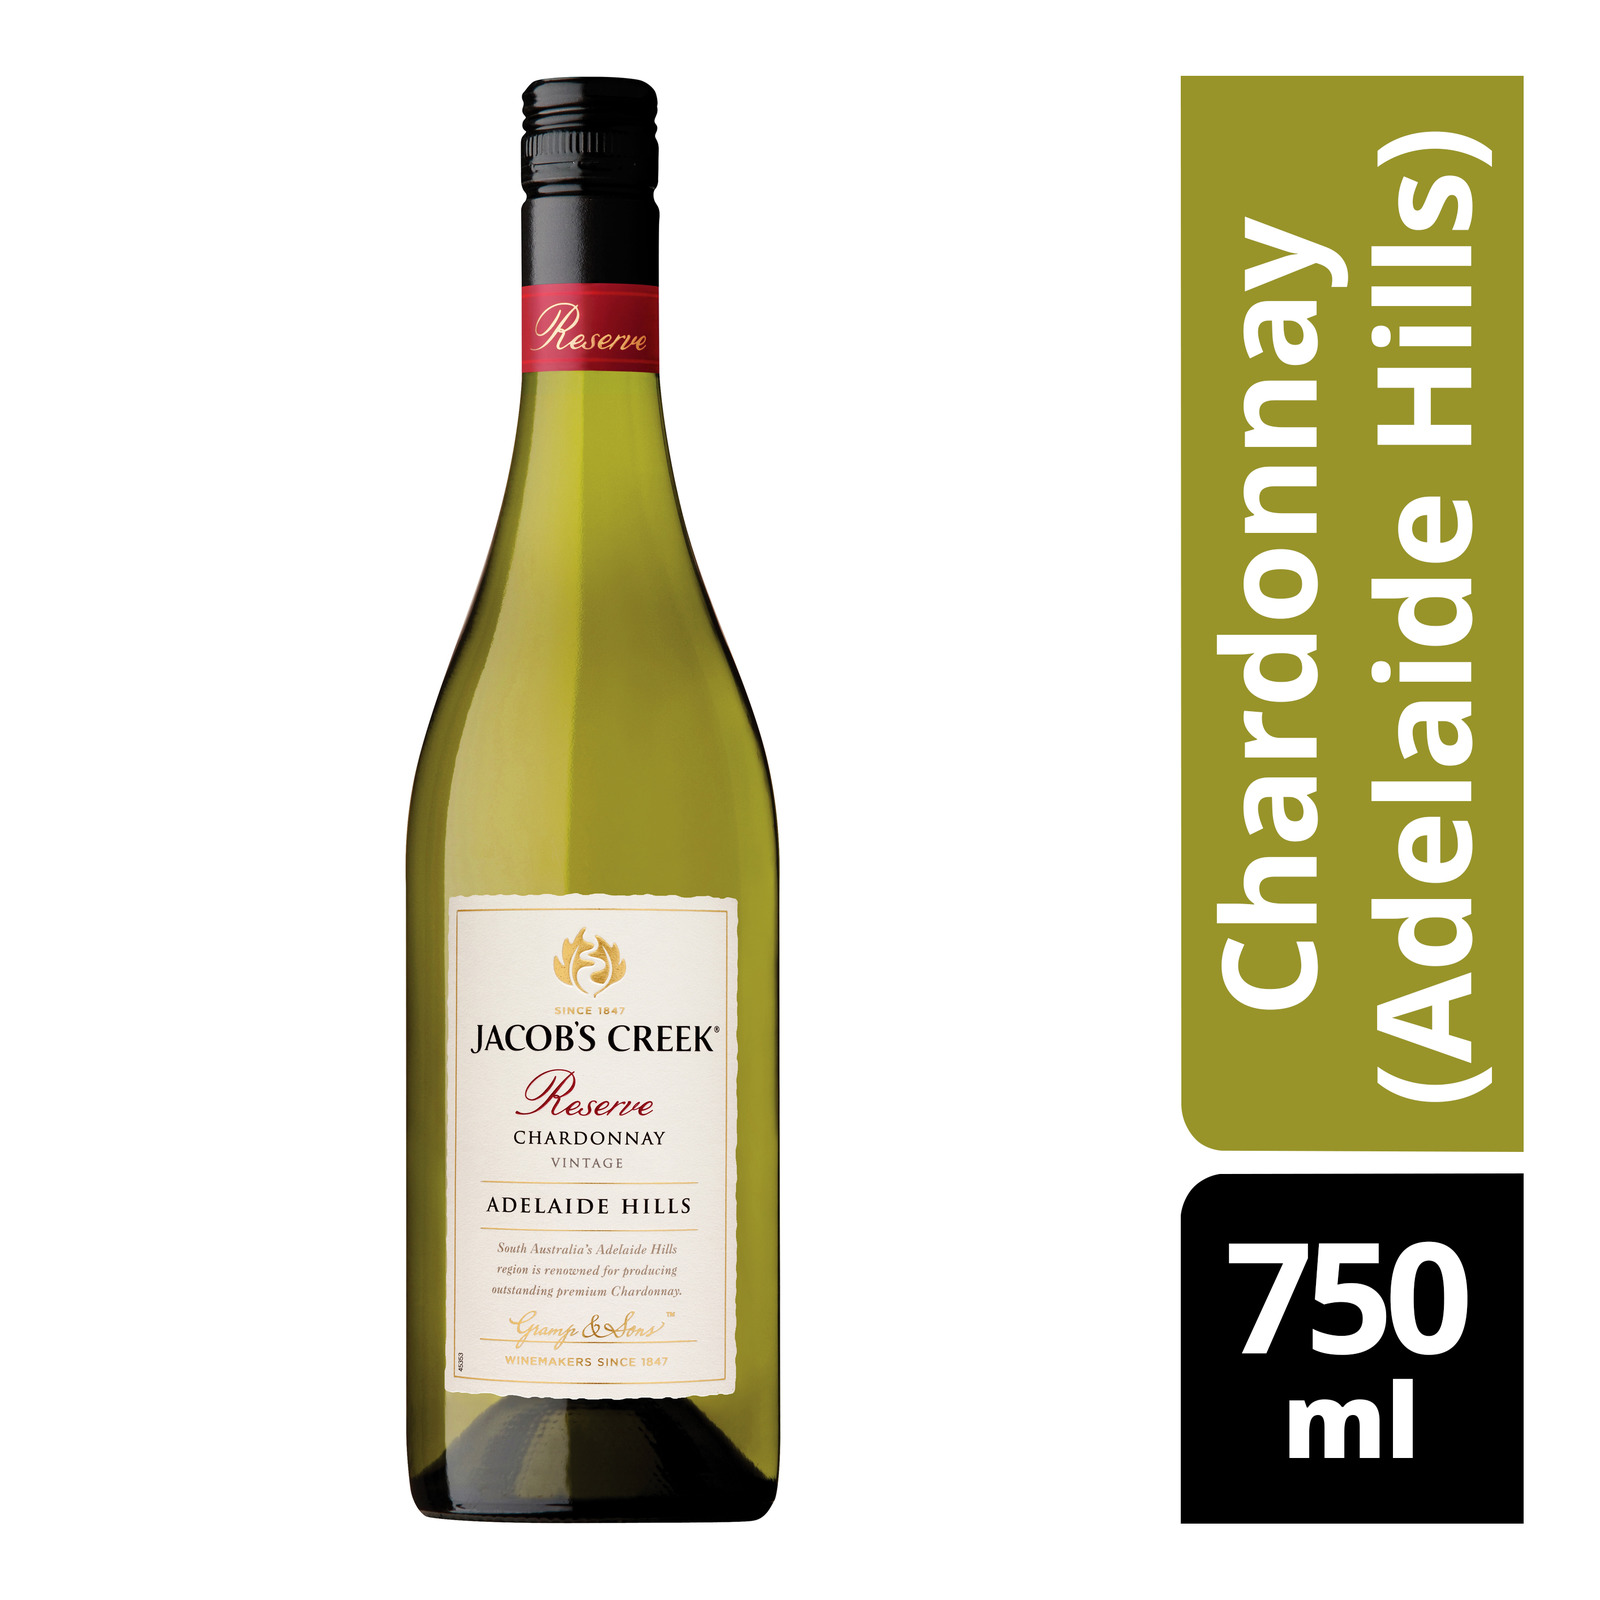 Jacob's Creek Reserve White Wine - Chardonnay (Adelaide Hills)